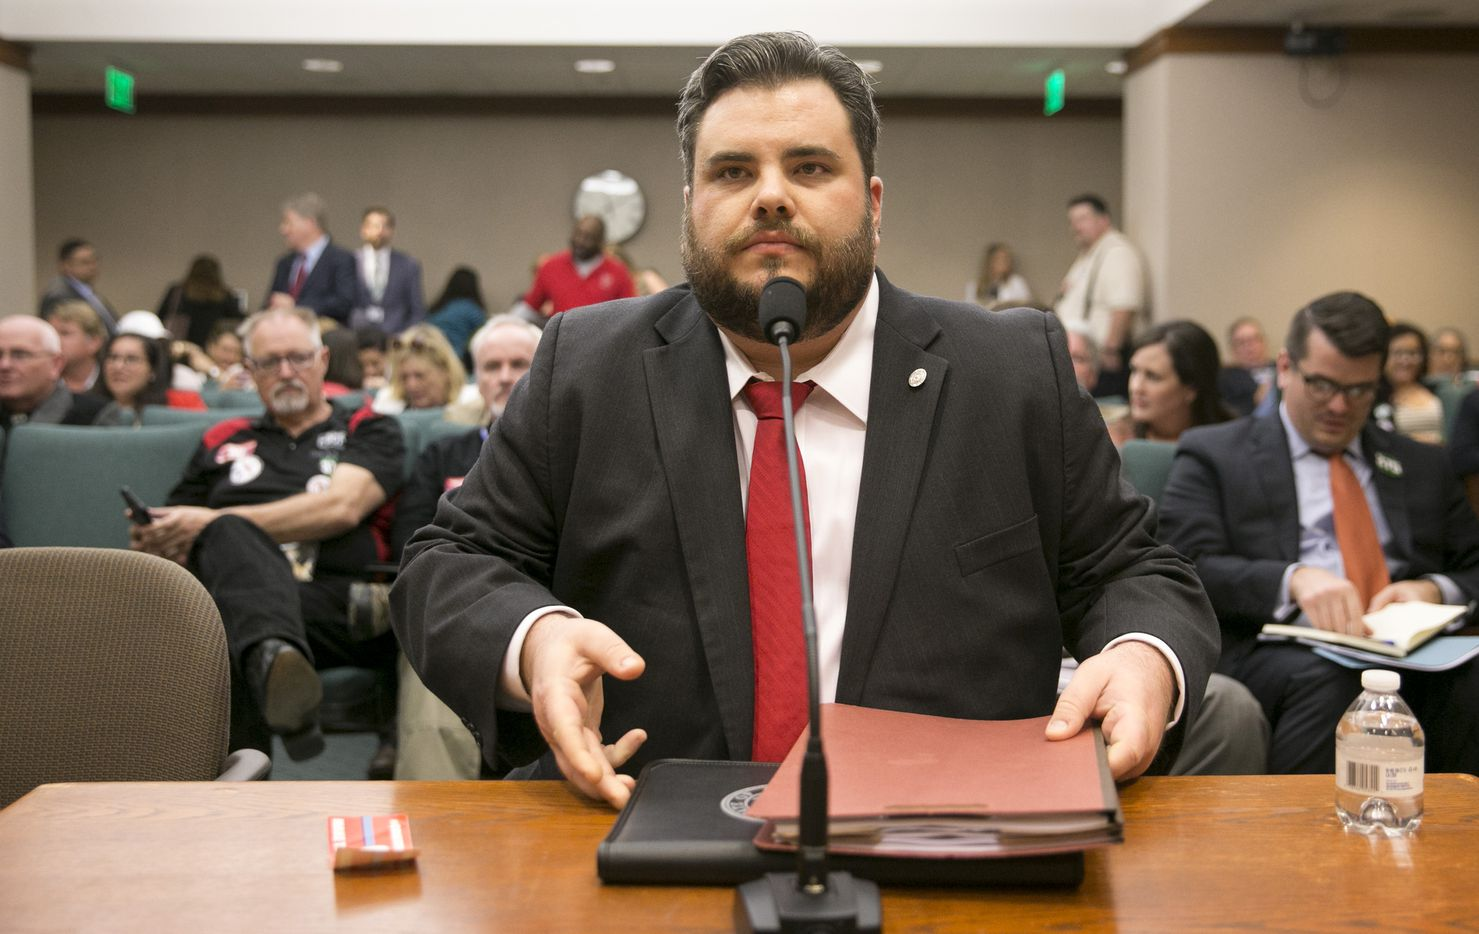 State Rep. Jonathan Stickland, R-Bedford, arrives at a Homeland Security & Public Safety Committee at the Capitol on Tuesday, March 28, 2017.